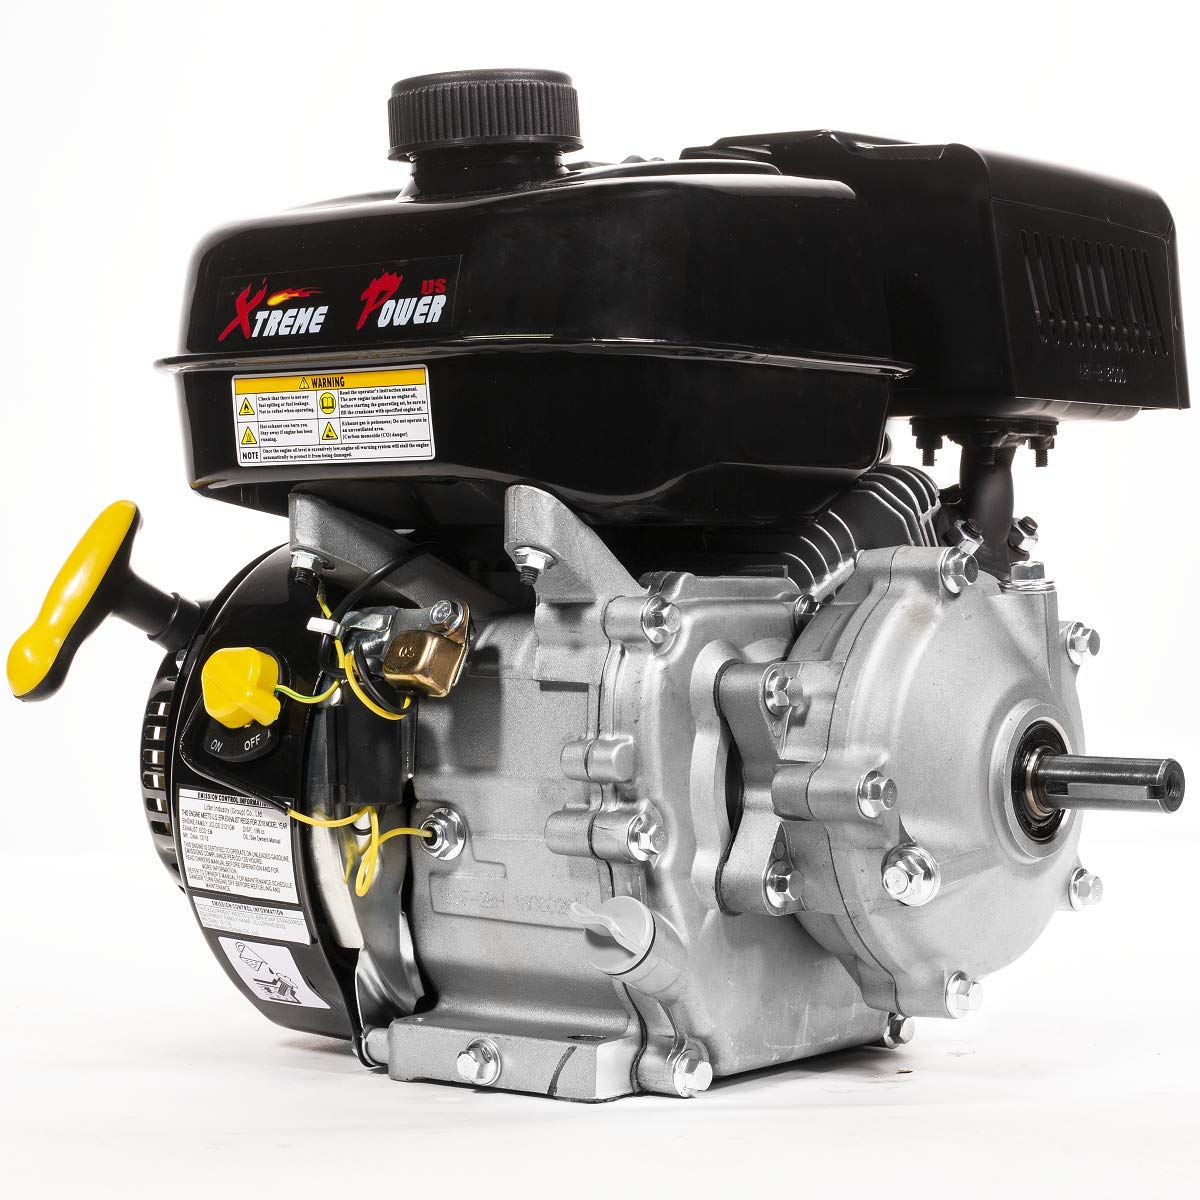 XtremepowerUS Premium 6.5HP 196cc OHV Horizontal Shaft Gas Engine 4-Stroke Motor Industrial Gas Engine GoKart EPA